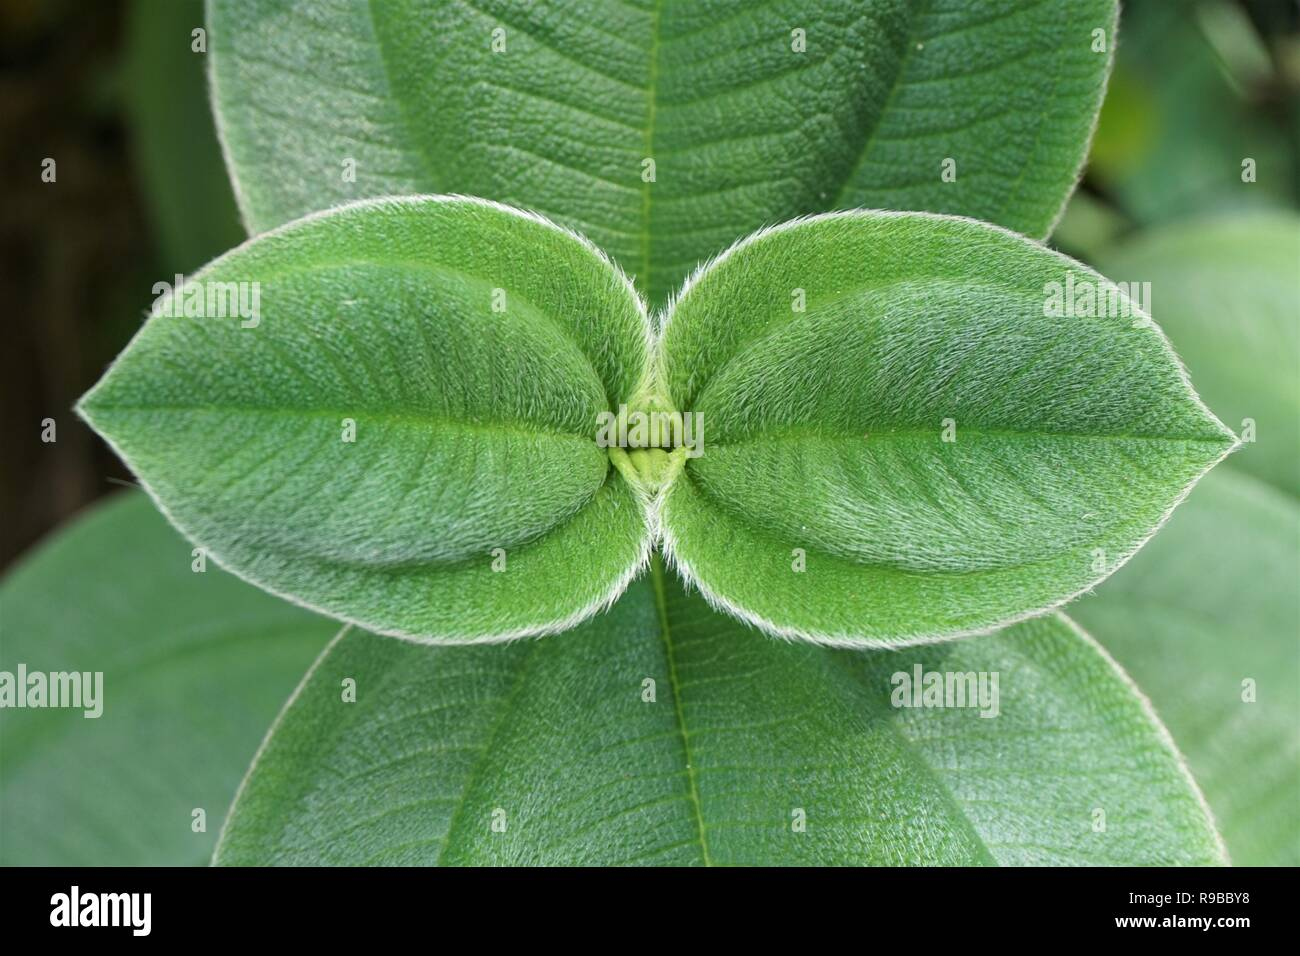 A symmetrical close up of the fuzzy green leaves of the Glory Flower - Tibouchina grandiflora - Stock Image